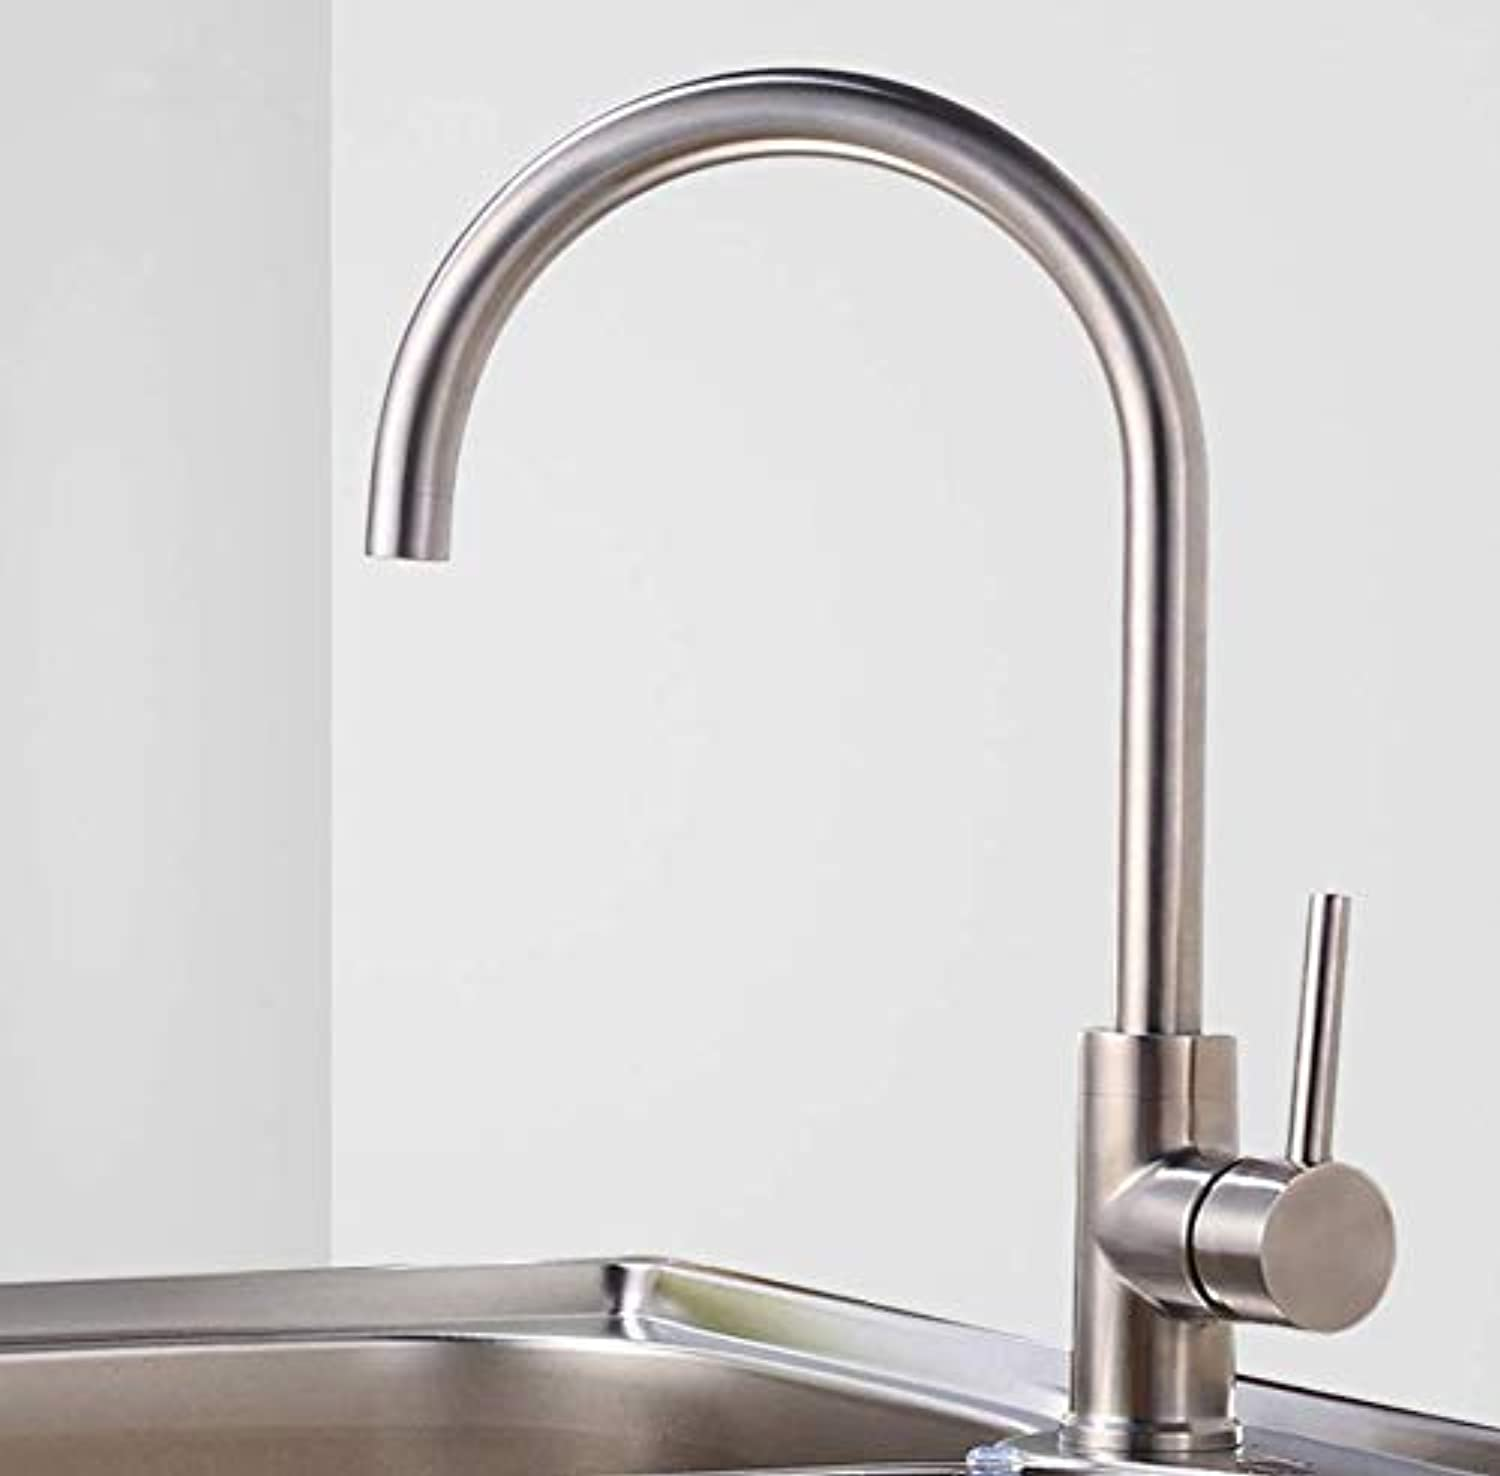 Kitchen Faucet Kitchen Faucet Stainless Steel Faucet Hot and Cold redating Sink